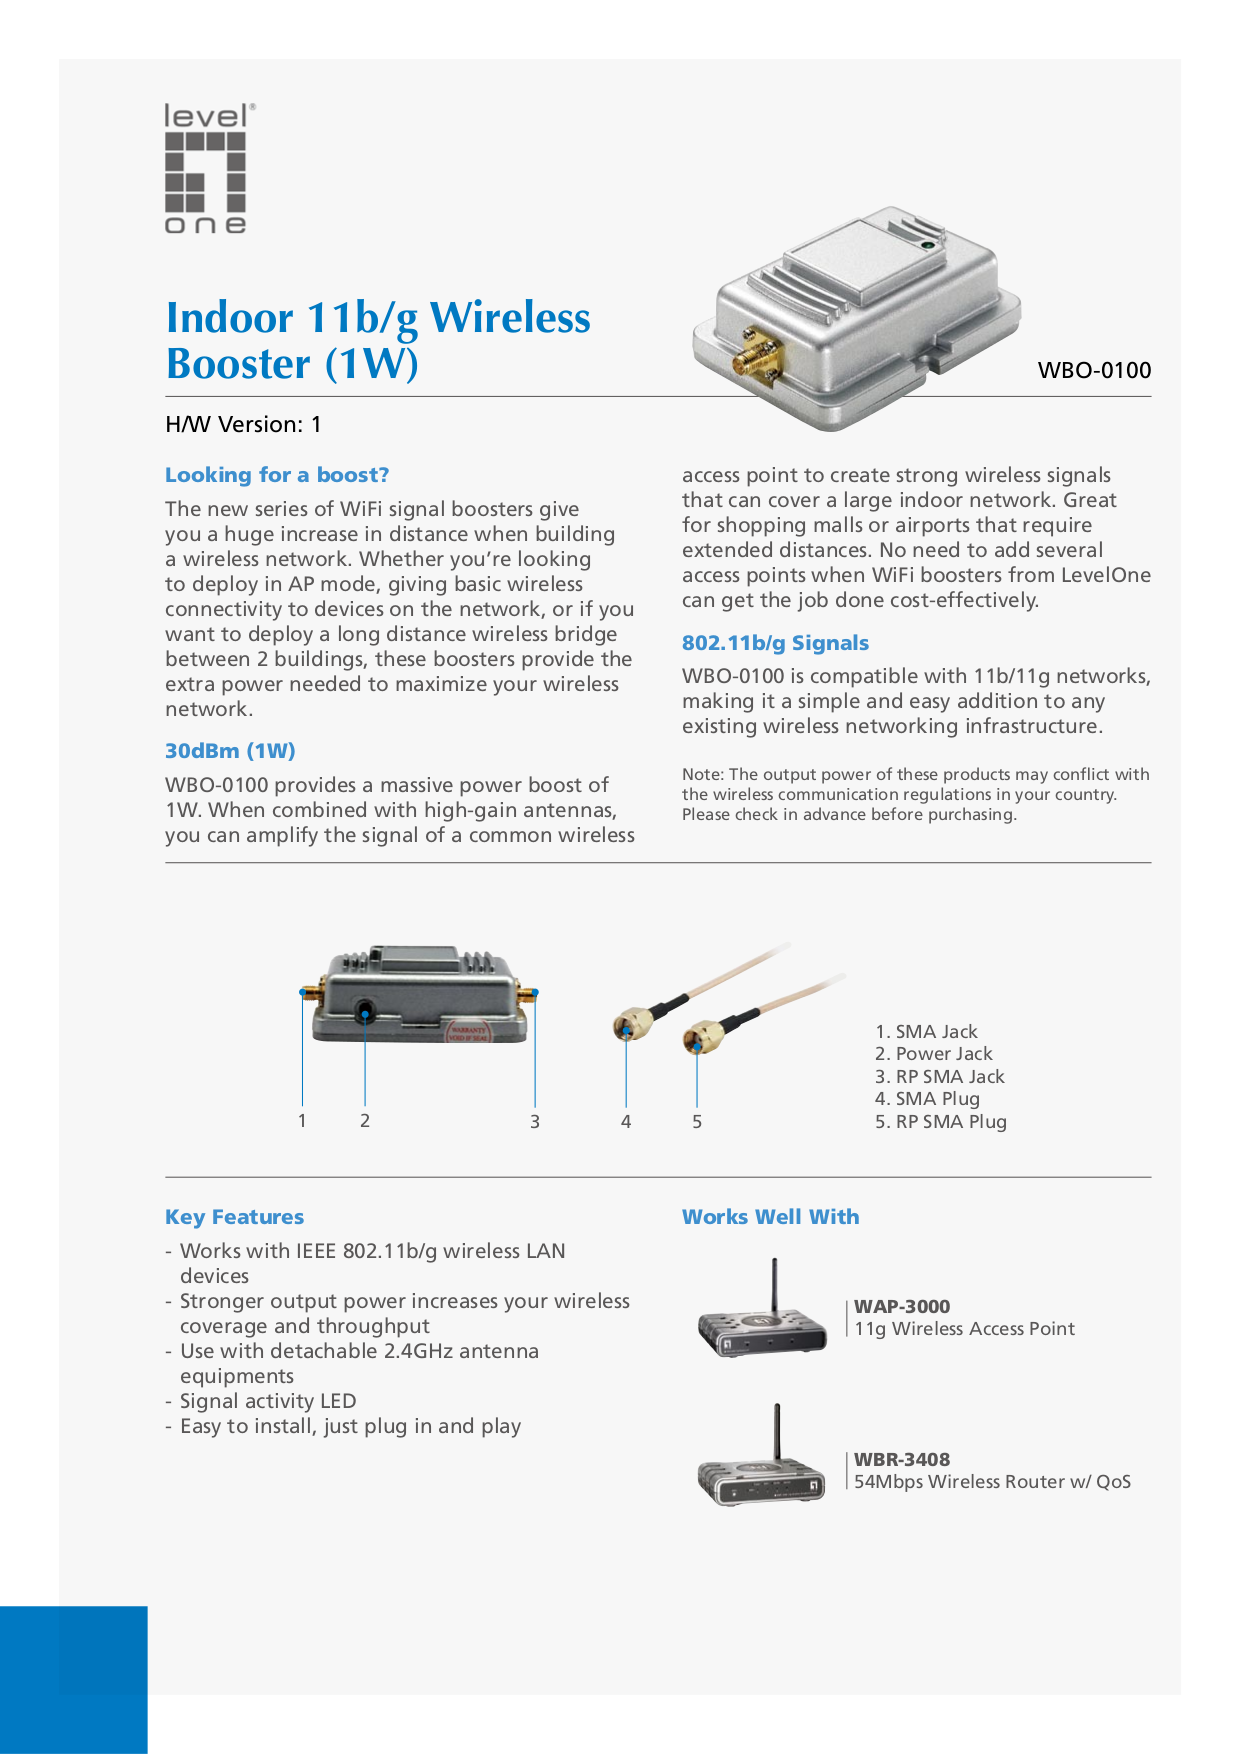 pdf for LevelOne Other WBO-0100 WiFi Signal Boosters manual